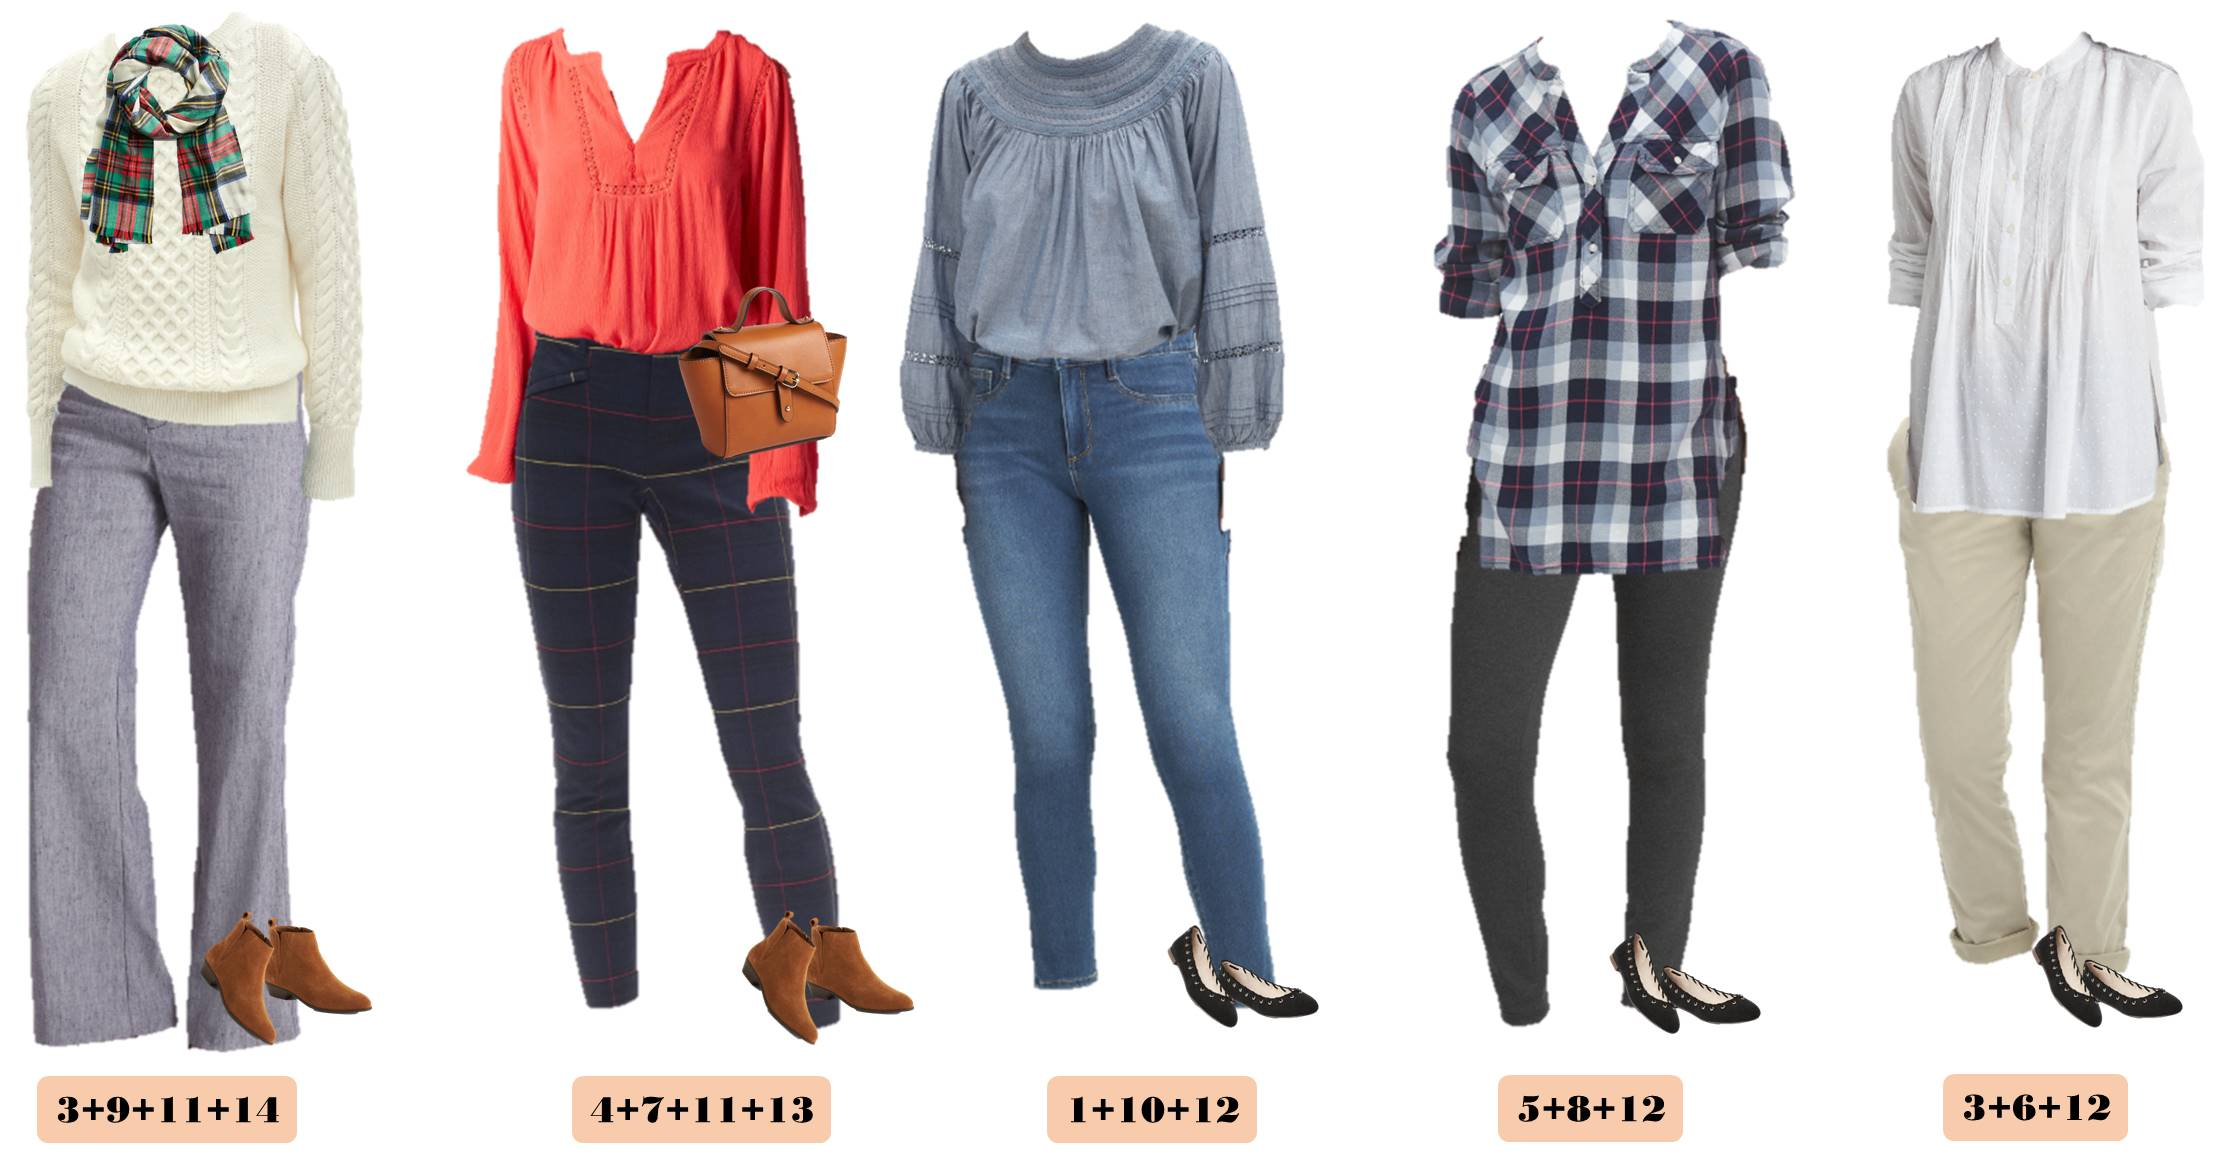 casual cute fall outfits that transition to winter - chambray, plaid and comfy sweater